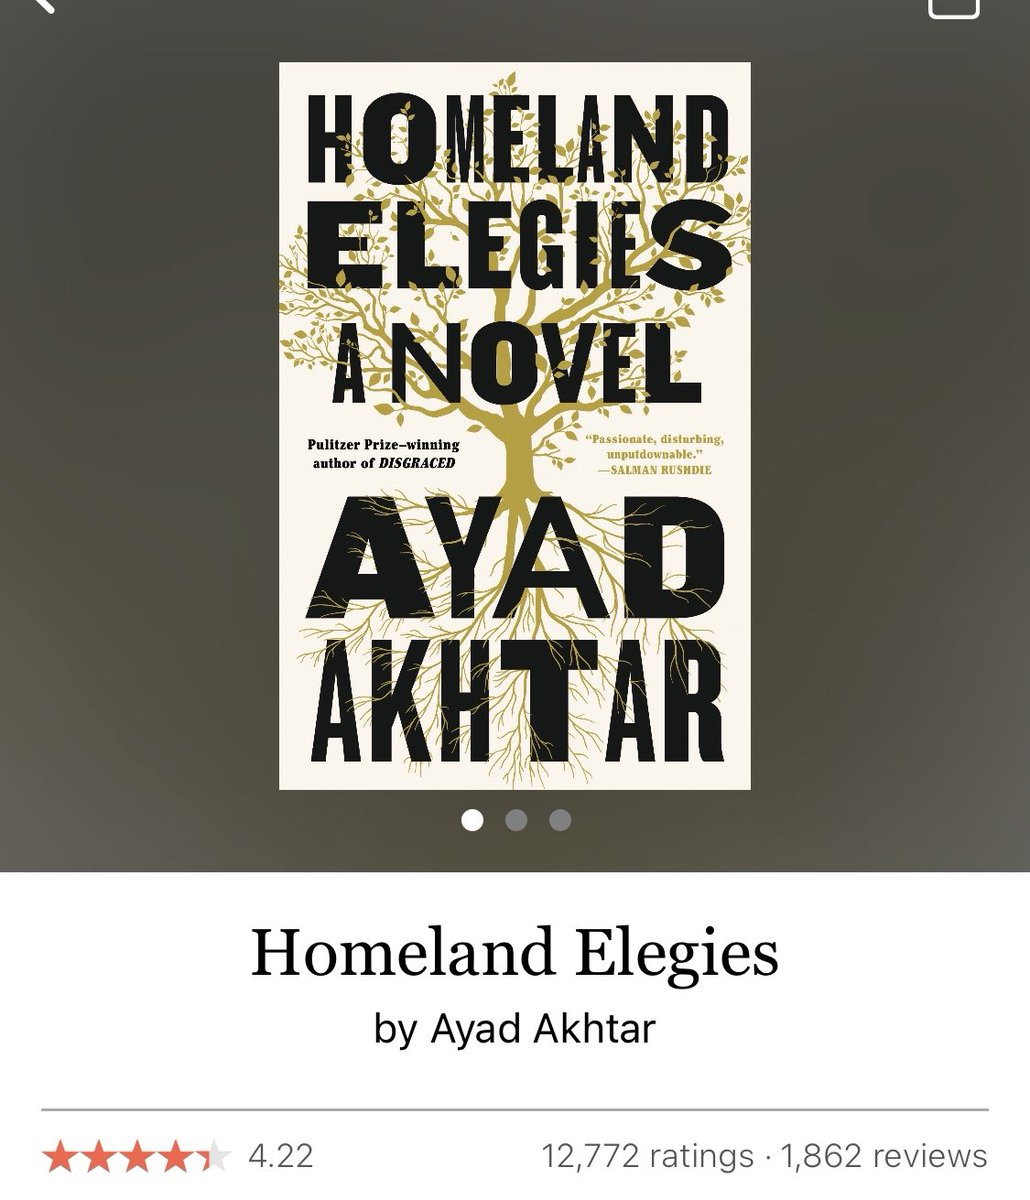 """I'm not sure which I liked more: the book or @ayadakhtar's reading of the #book on #Audible 🤔 Regardless, this book will resonate deeply with anyone who's been asked """"No, where are you reeeaaally from?"""" #aapi #racismisnotfreedomofexpression https://t.co/d0qCORnzFp"""